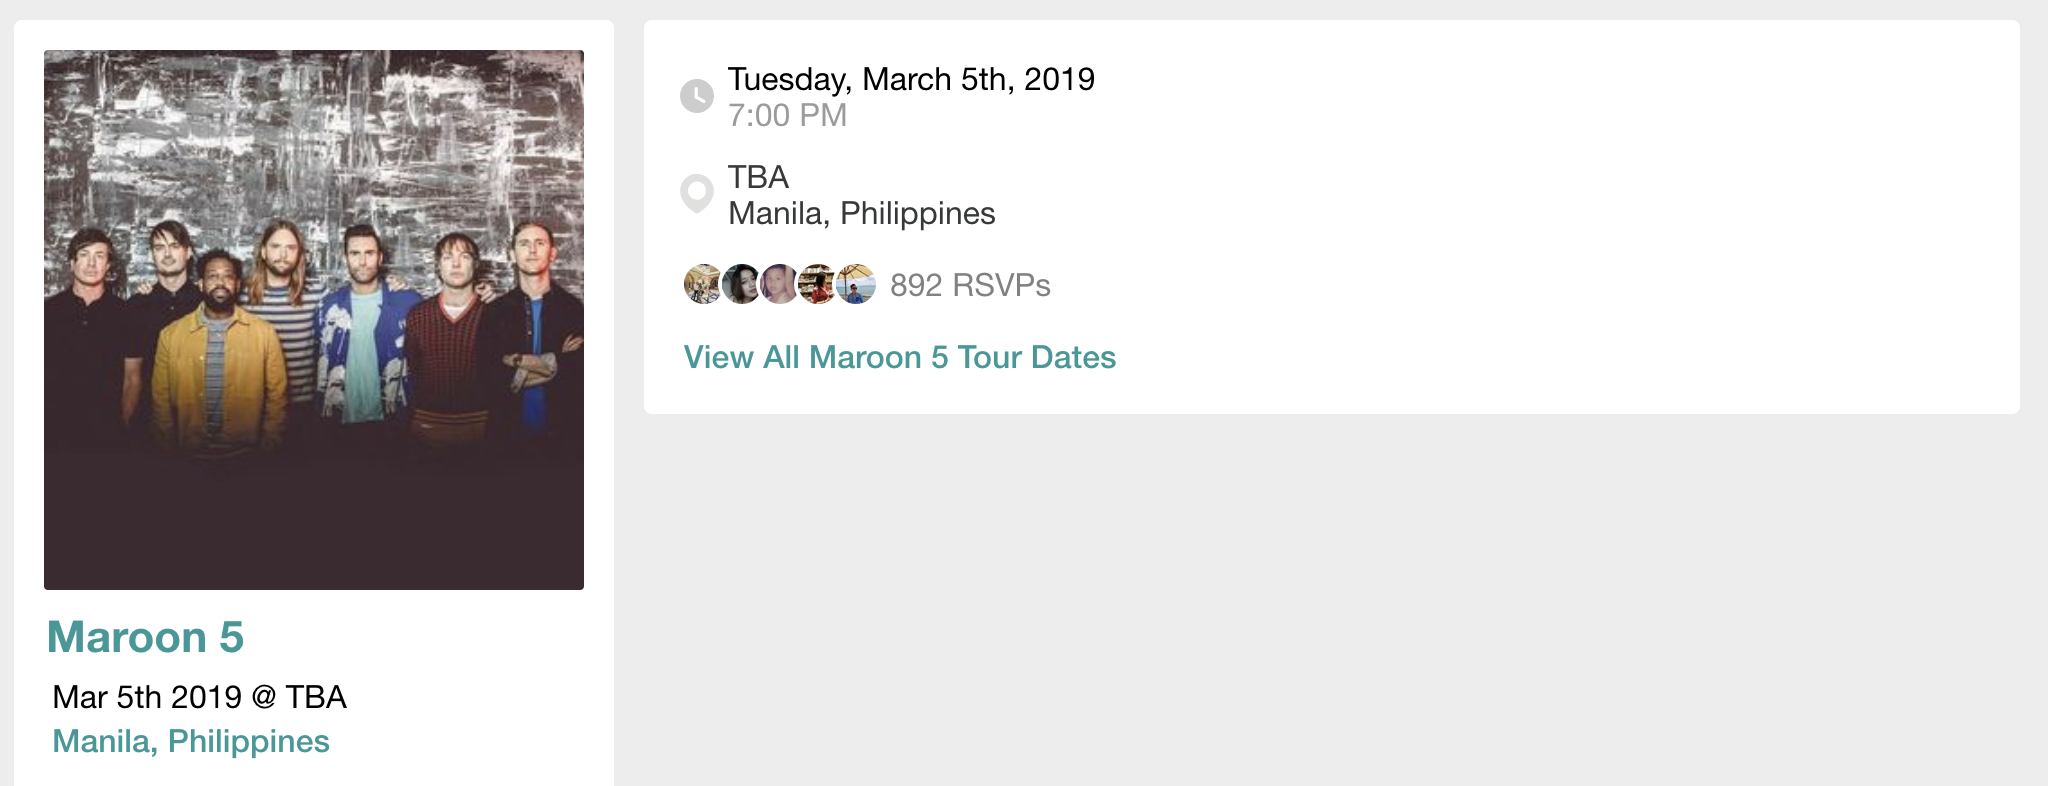 A screenshot of Maroon 5's concert in Manila 2019 details.